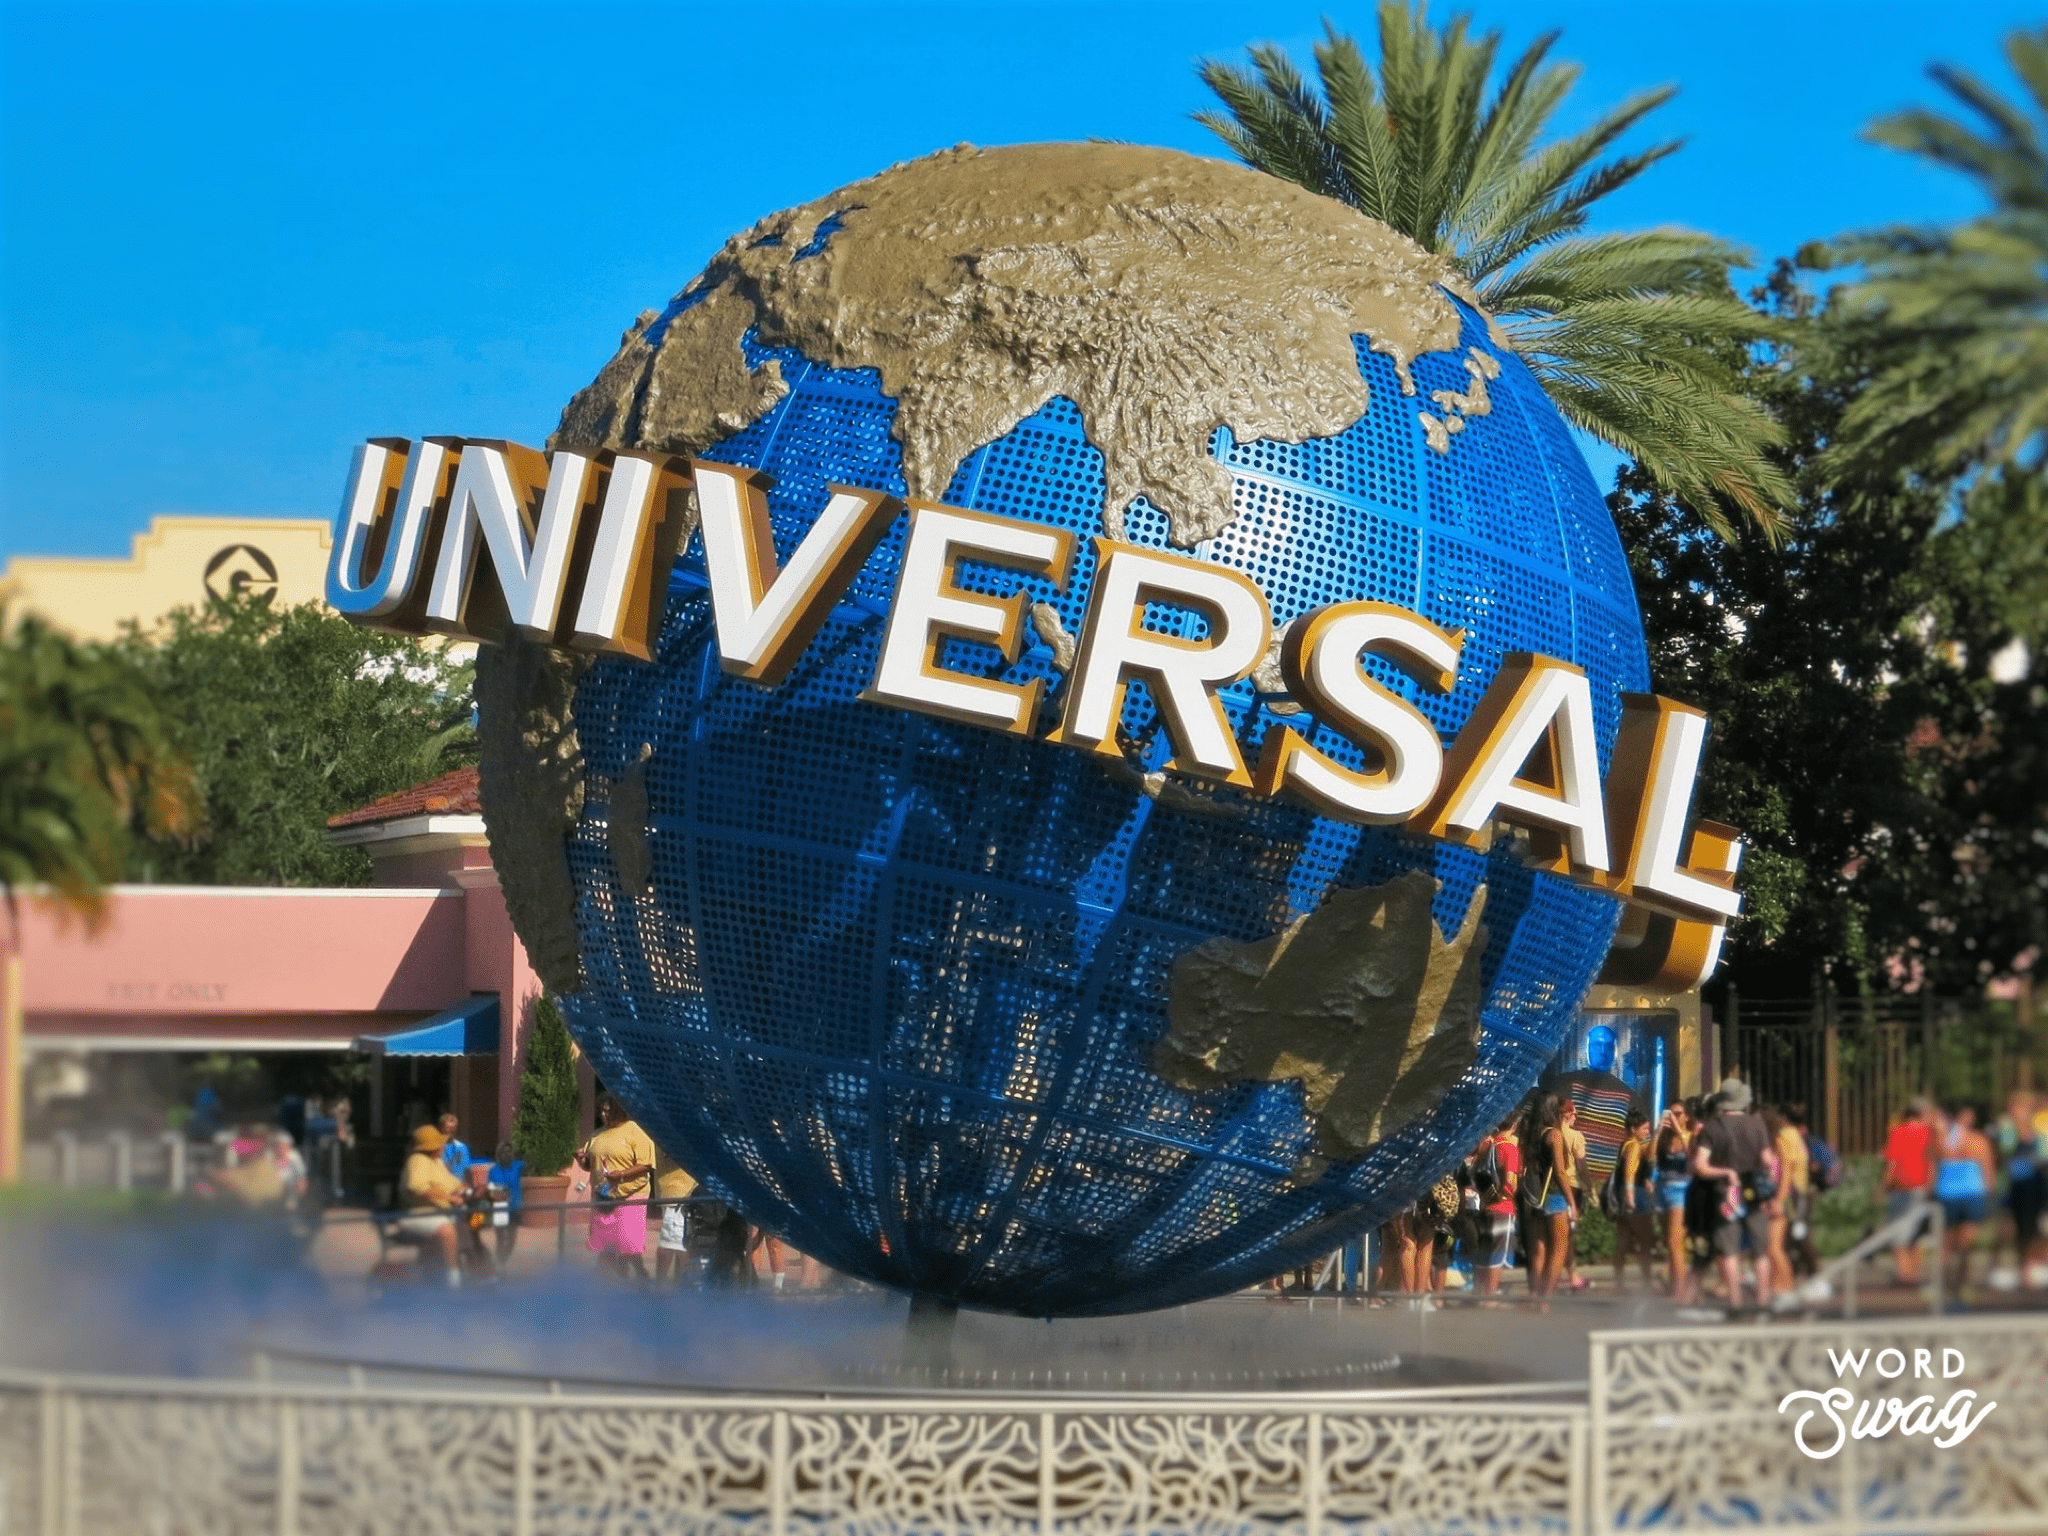 Best rides at Islands of Adventure at Universal Orlando